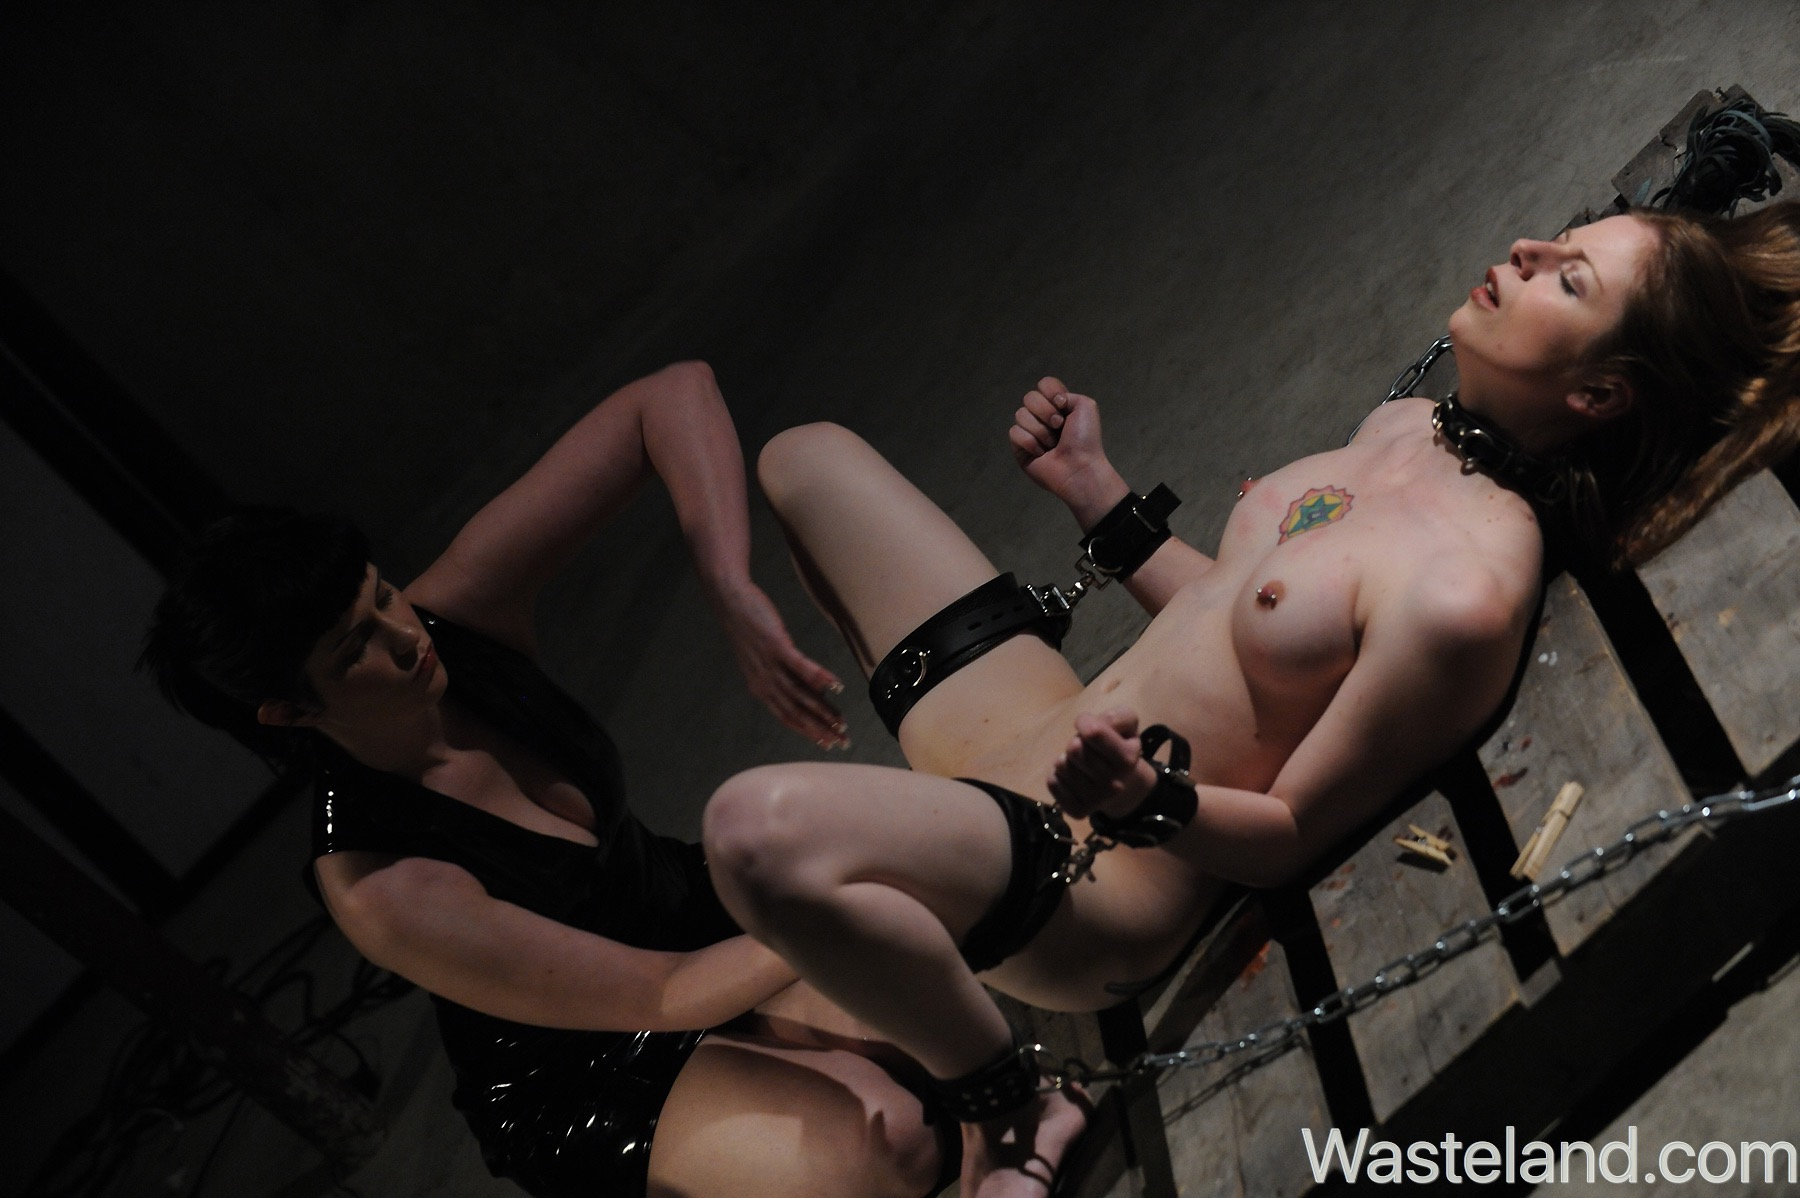 Lesbian BDSM Movie -The Reckoning